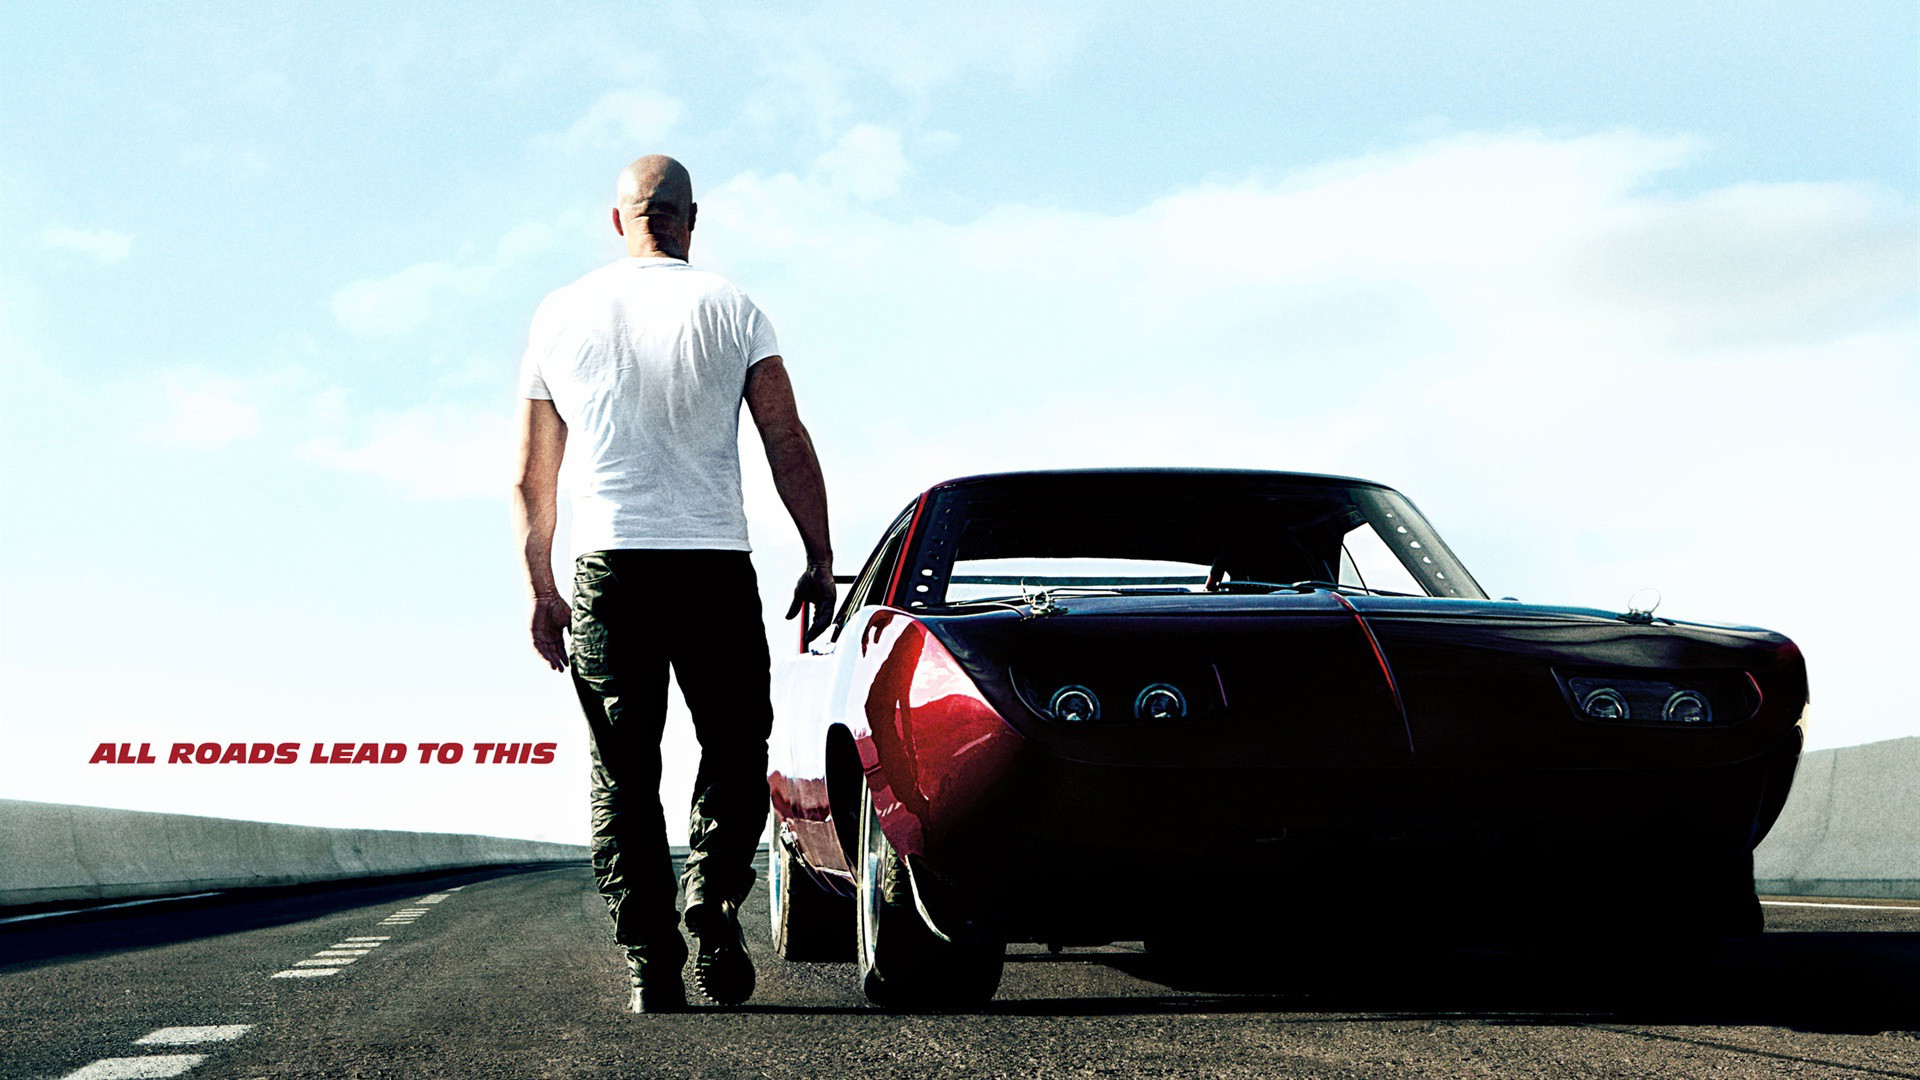 Letty Car Fast And Furious Fast And Furious 7 Wallpapers (75+ Images)